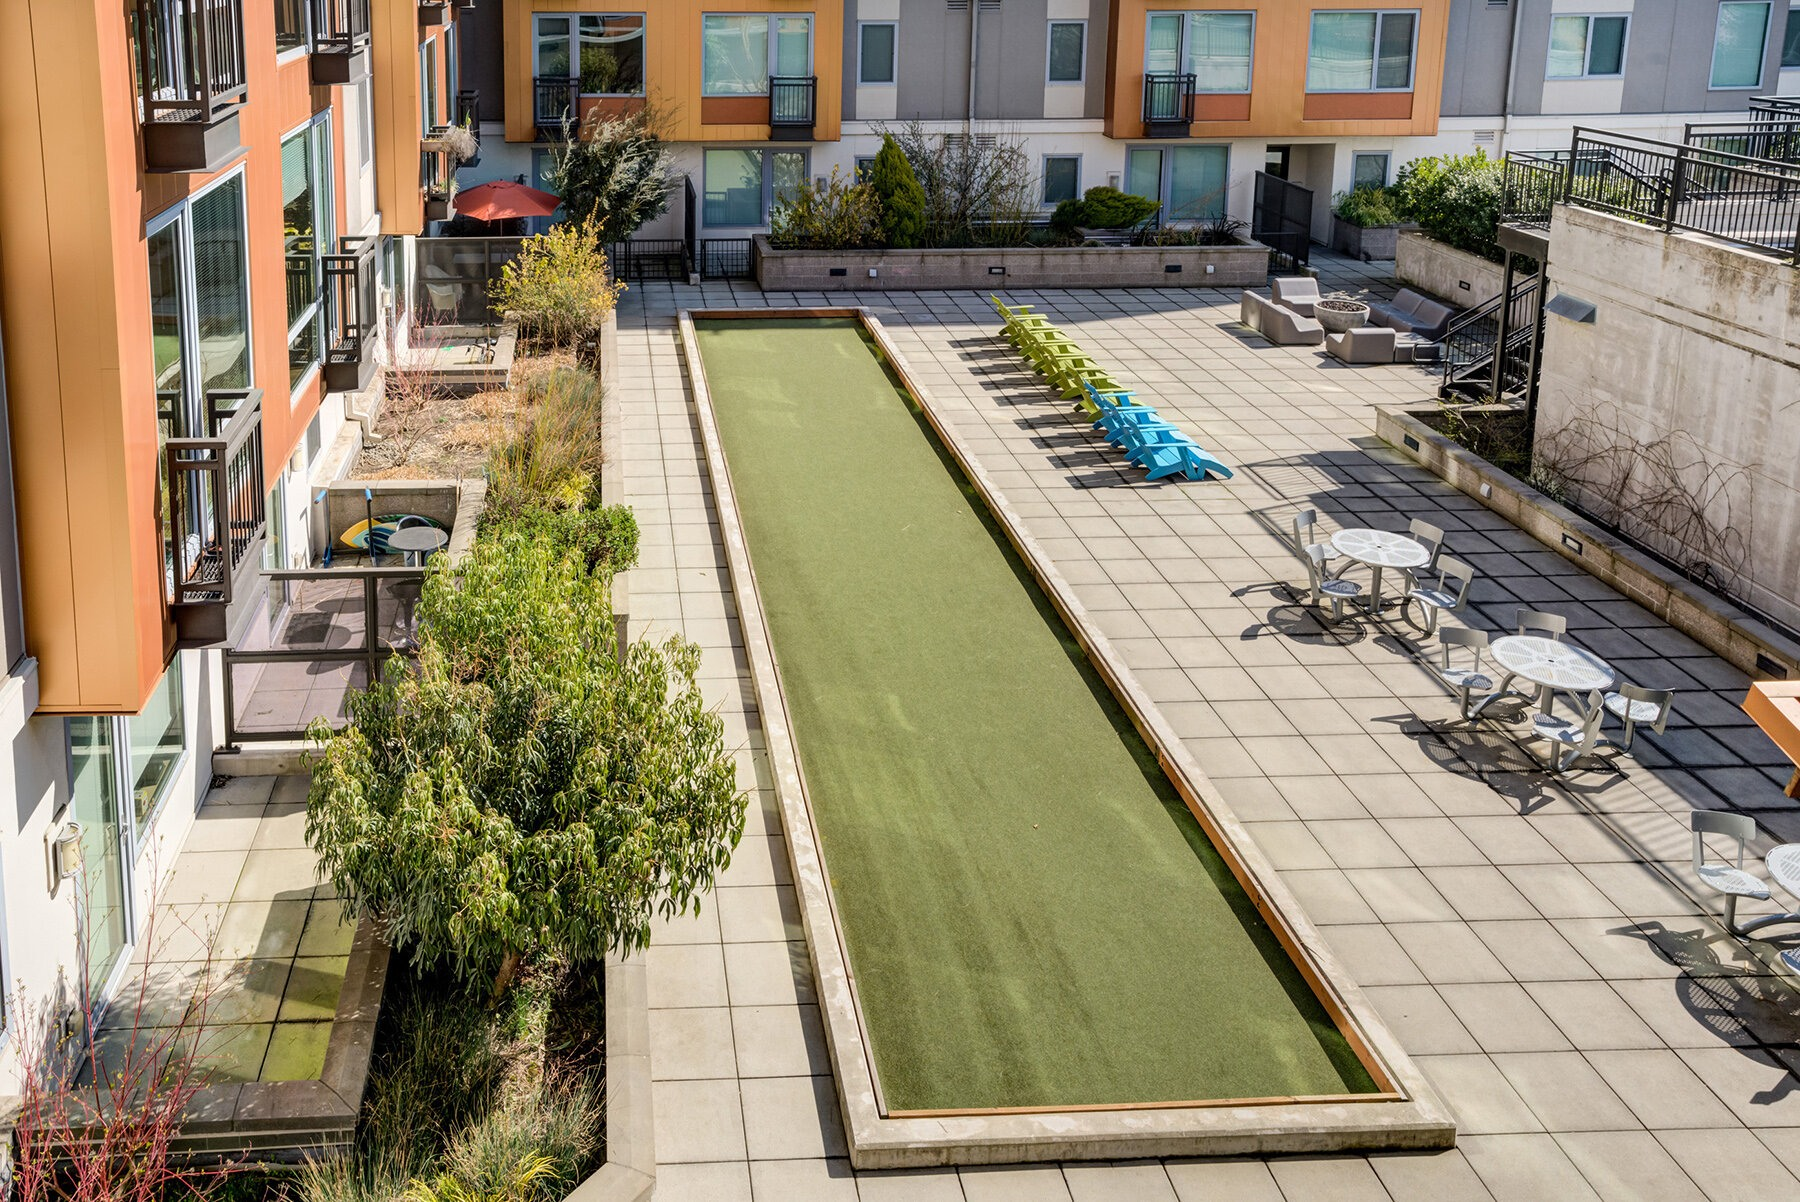 Ariel view of bocce ball court